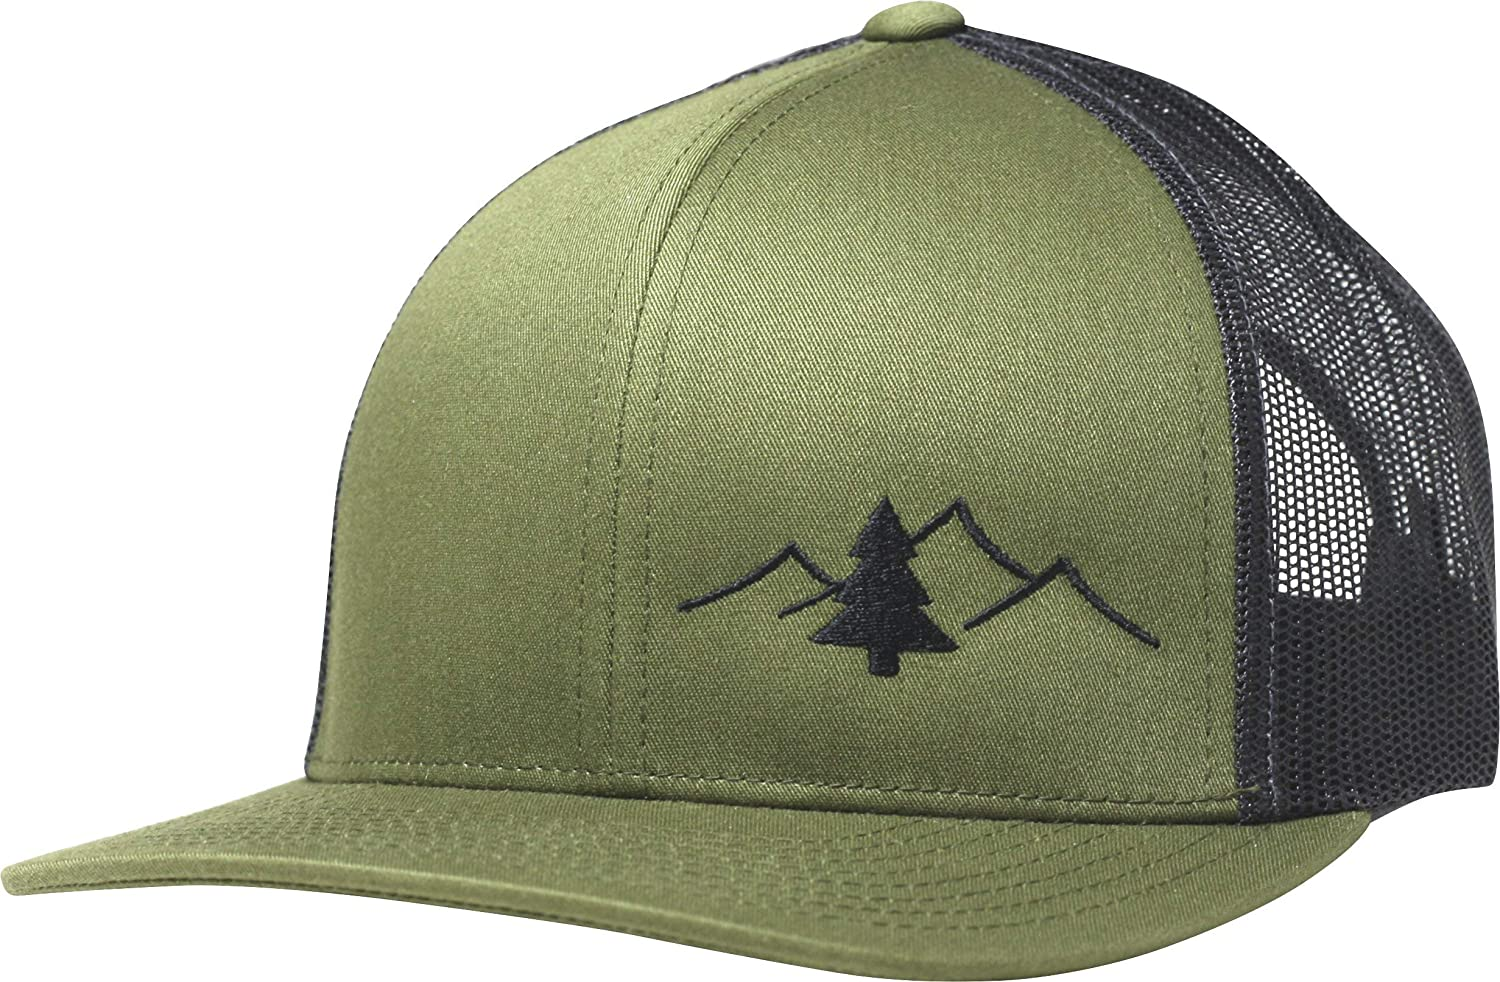 Top 10 Trucker Hats With Nature Design